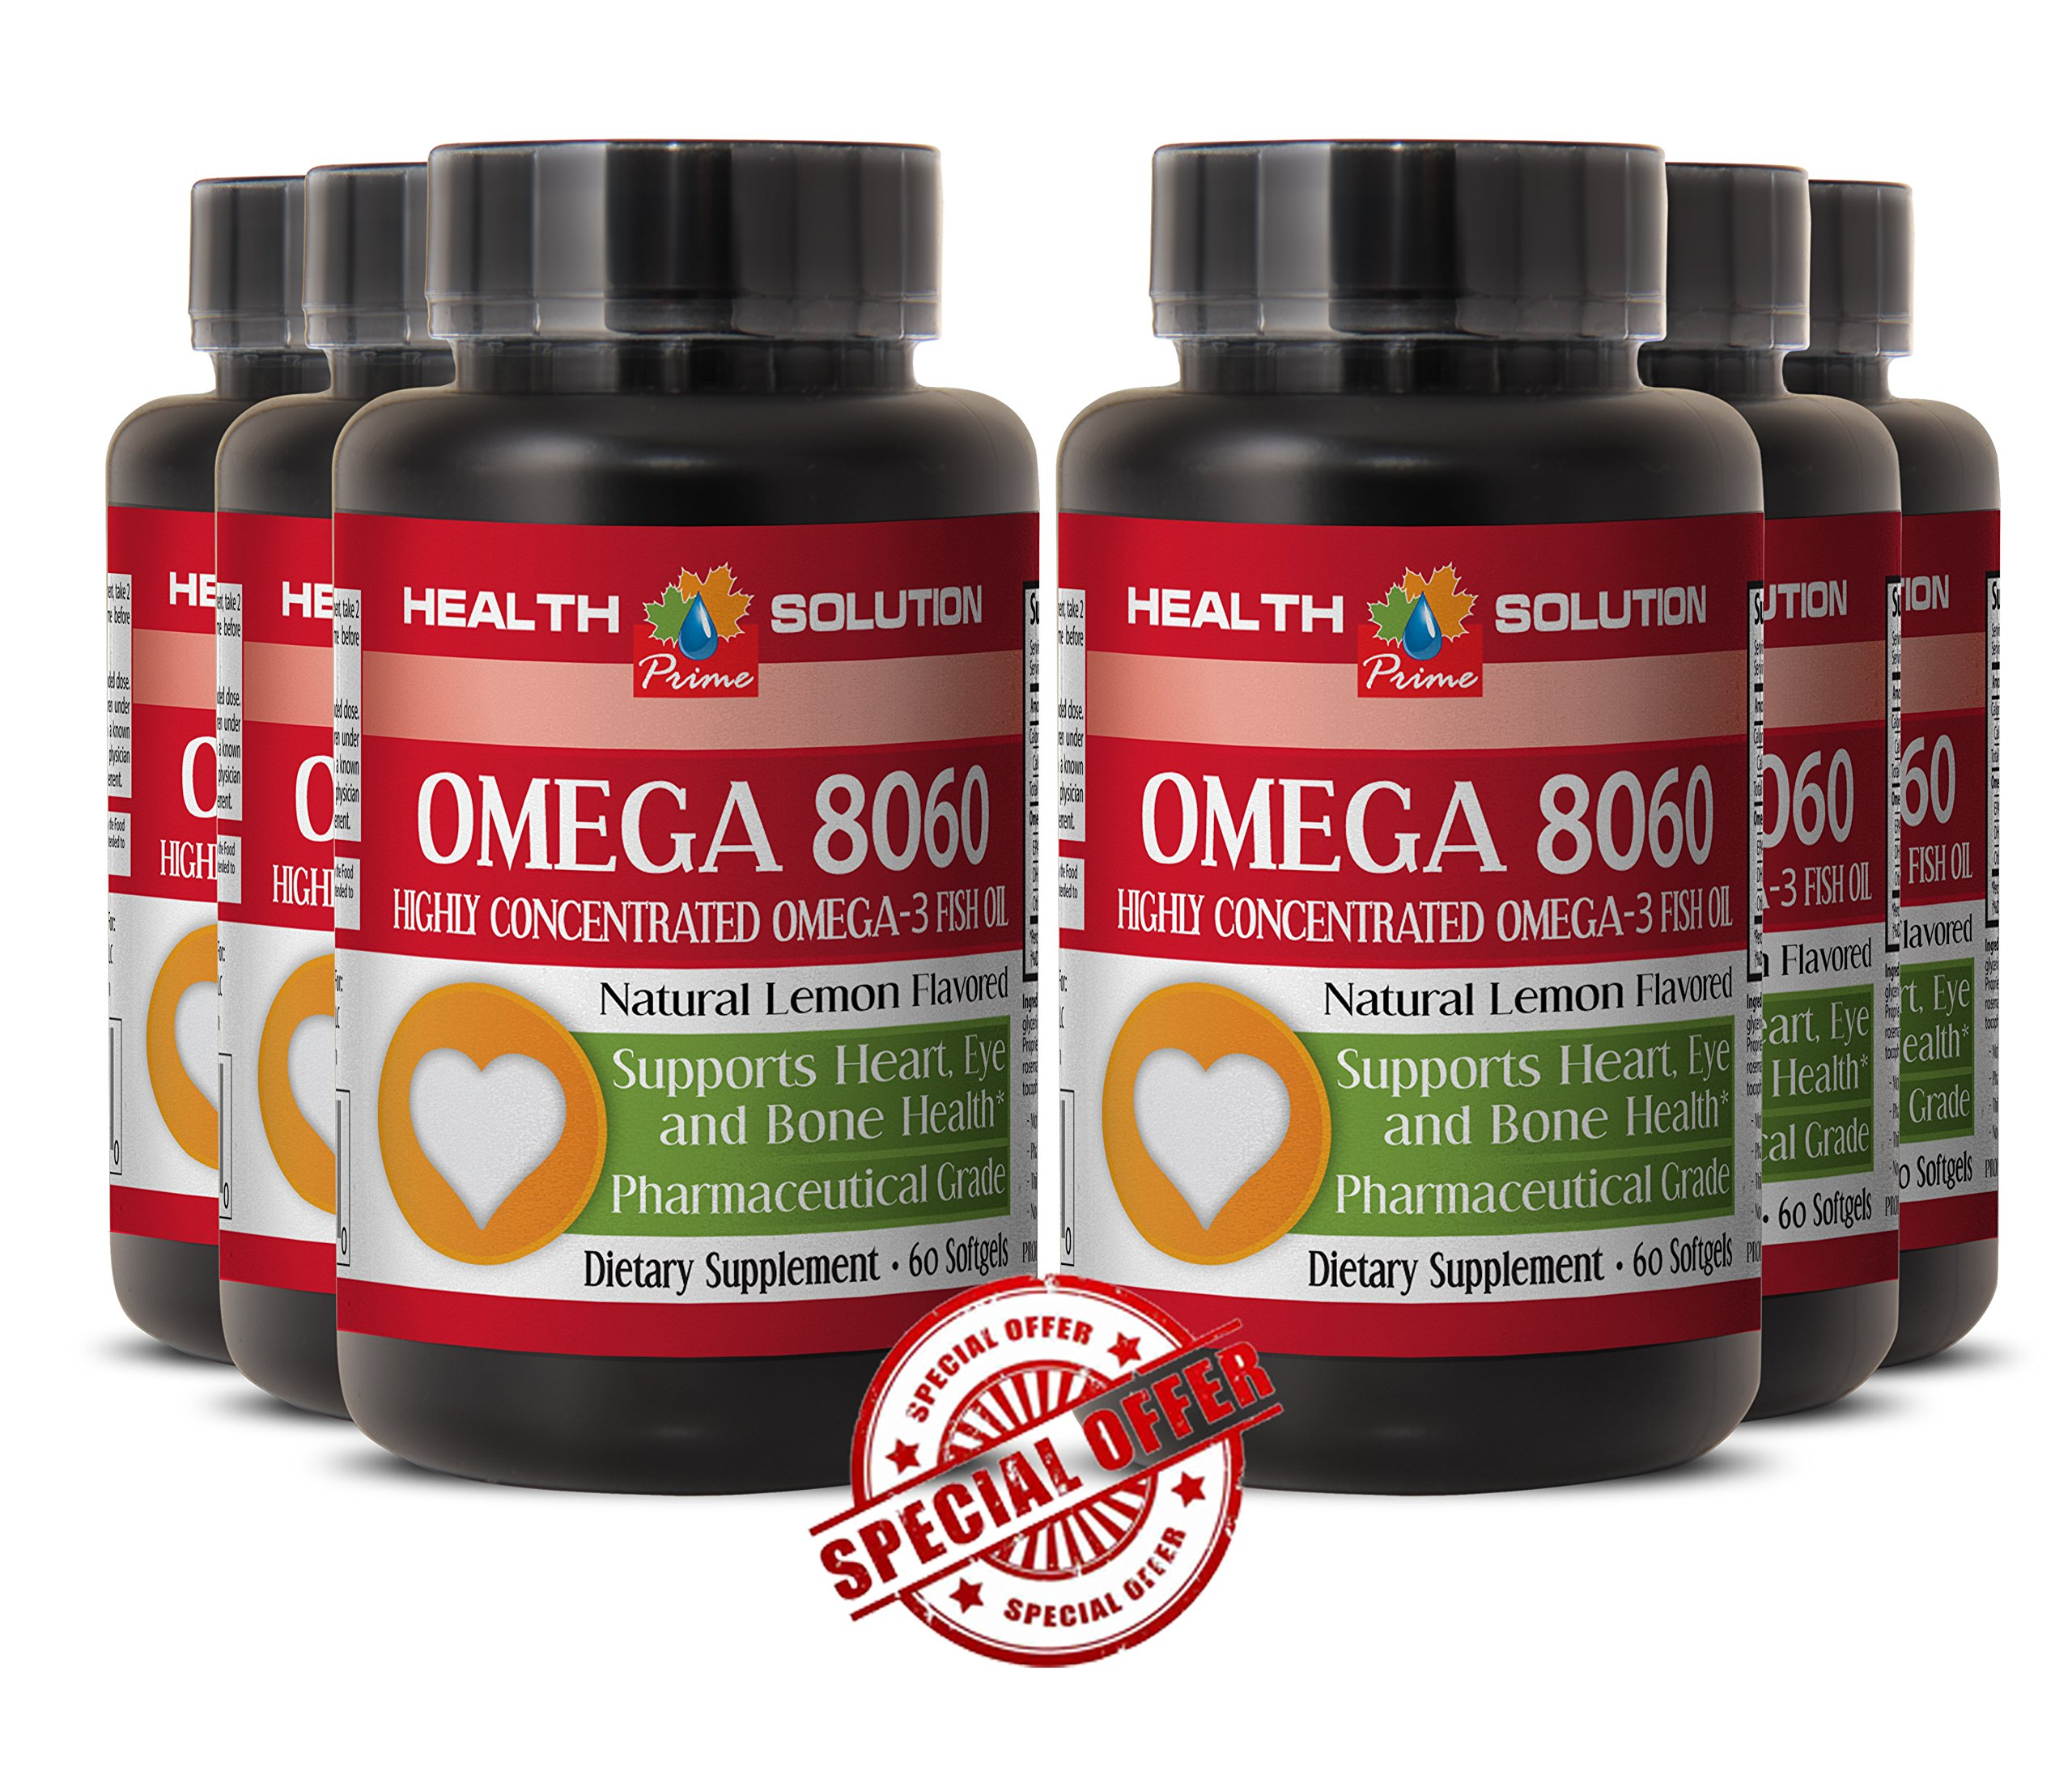 Omega supplement organic - OMEGA 8060 OMEGA-3 FATTY ACIDS - improve attention (6 Bottles) by Health Solution Prime